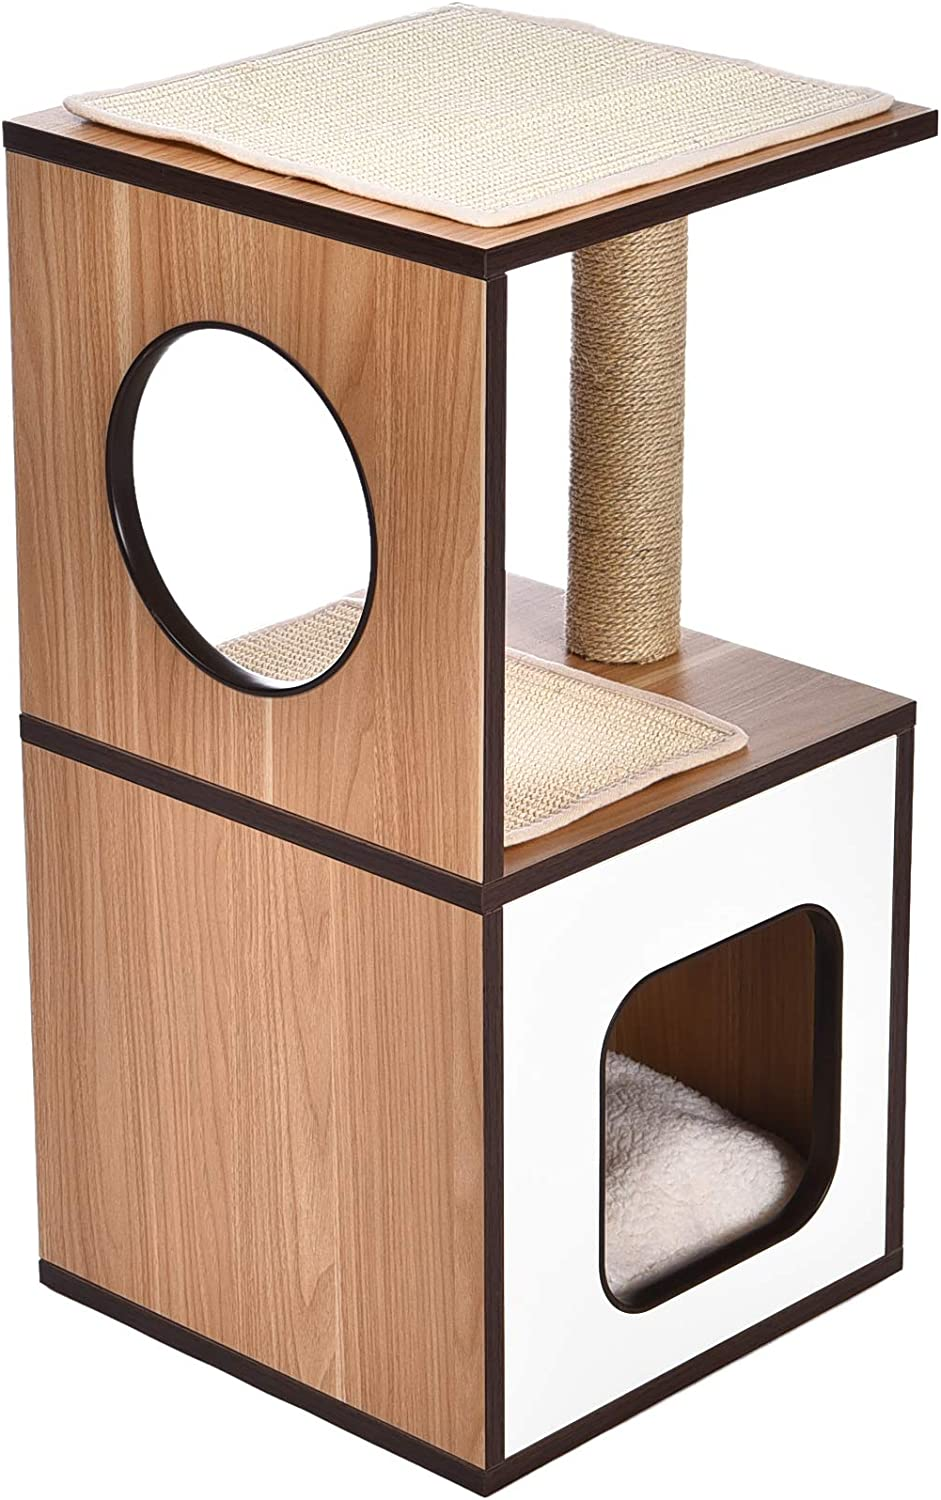 Basics Single Scratching Post Wooden Cat Tree Furniture - 15 x 15 x 28 Inches : Pet Supplies